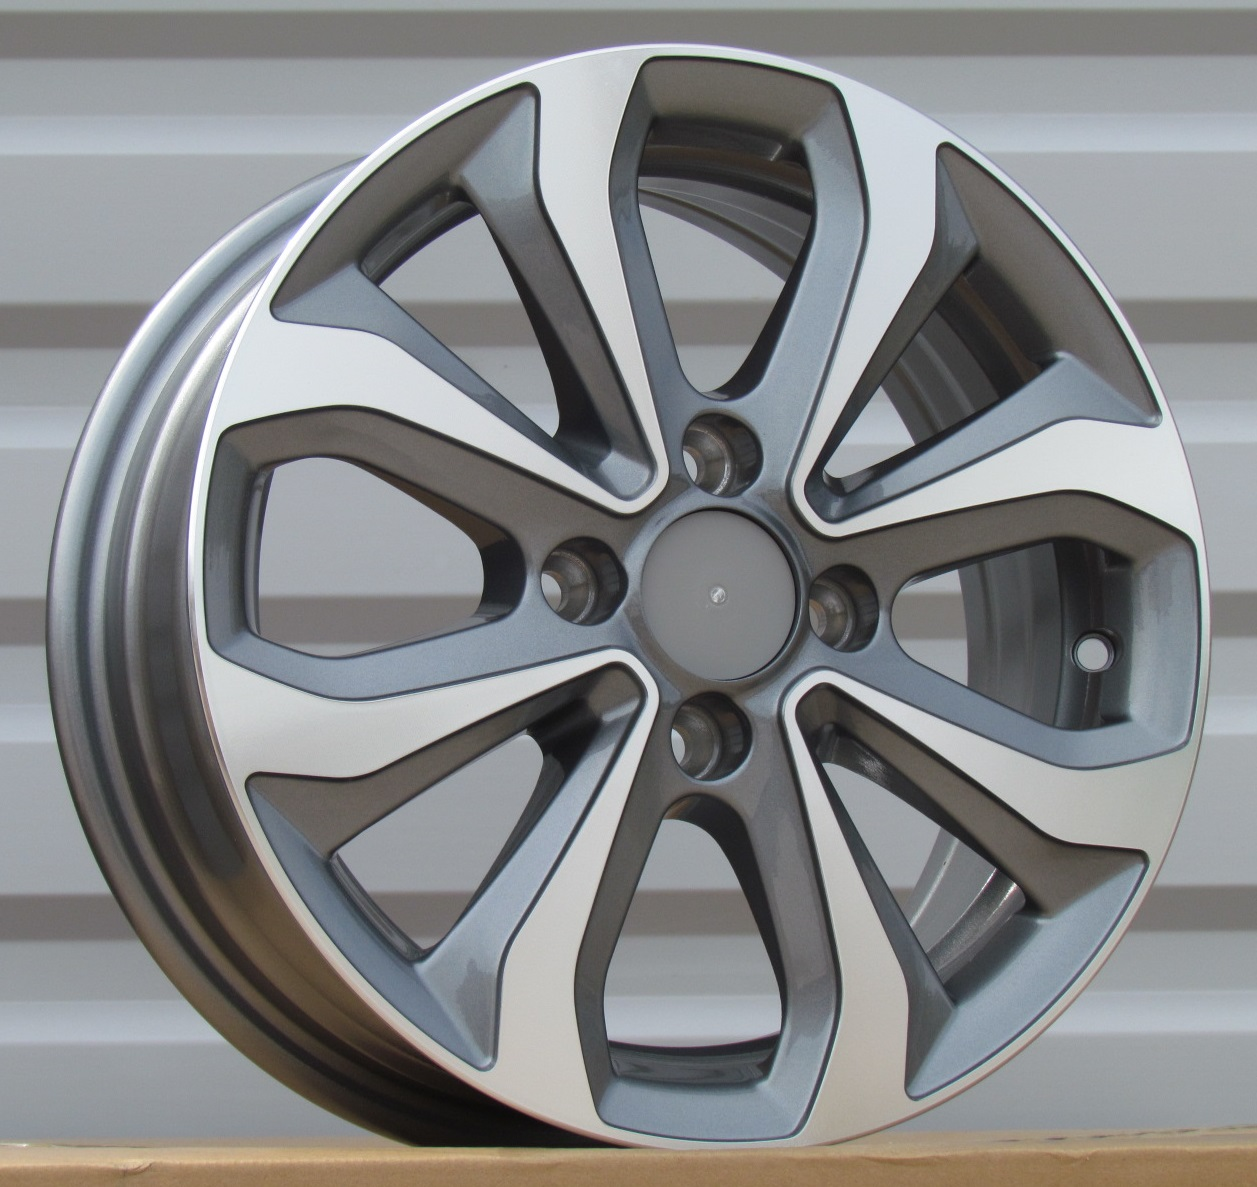 R14X5.5 4X100 ET38 54.1 XFE275 MG+POWDER COATING RWR Hyundai (+2eur (P1)## 5.5x14 ET38 4x100